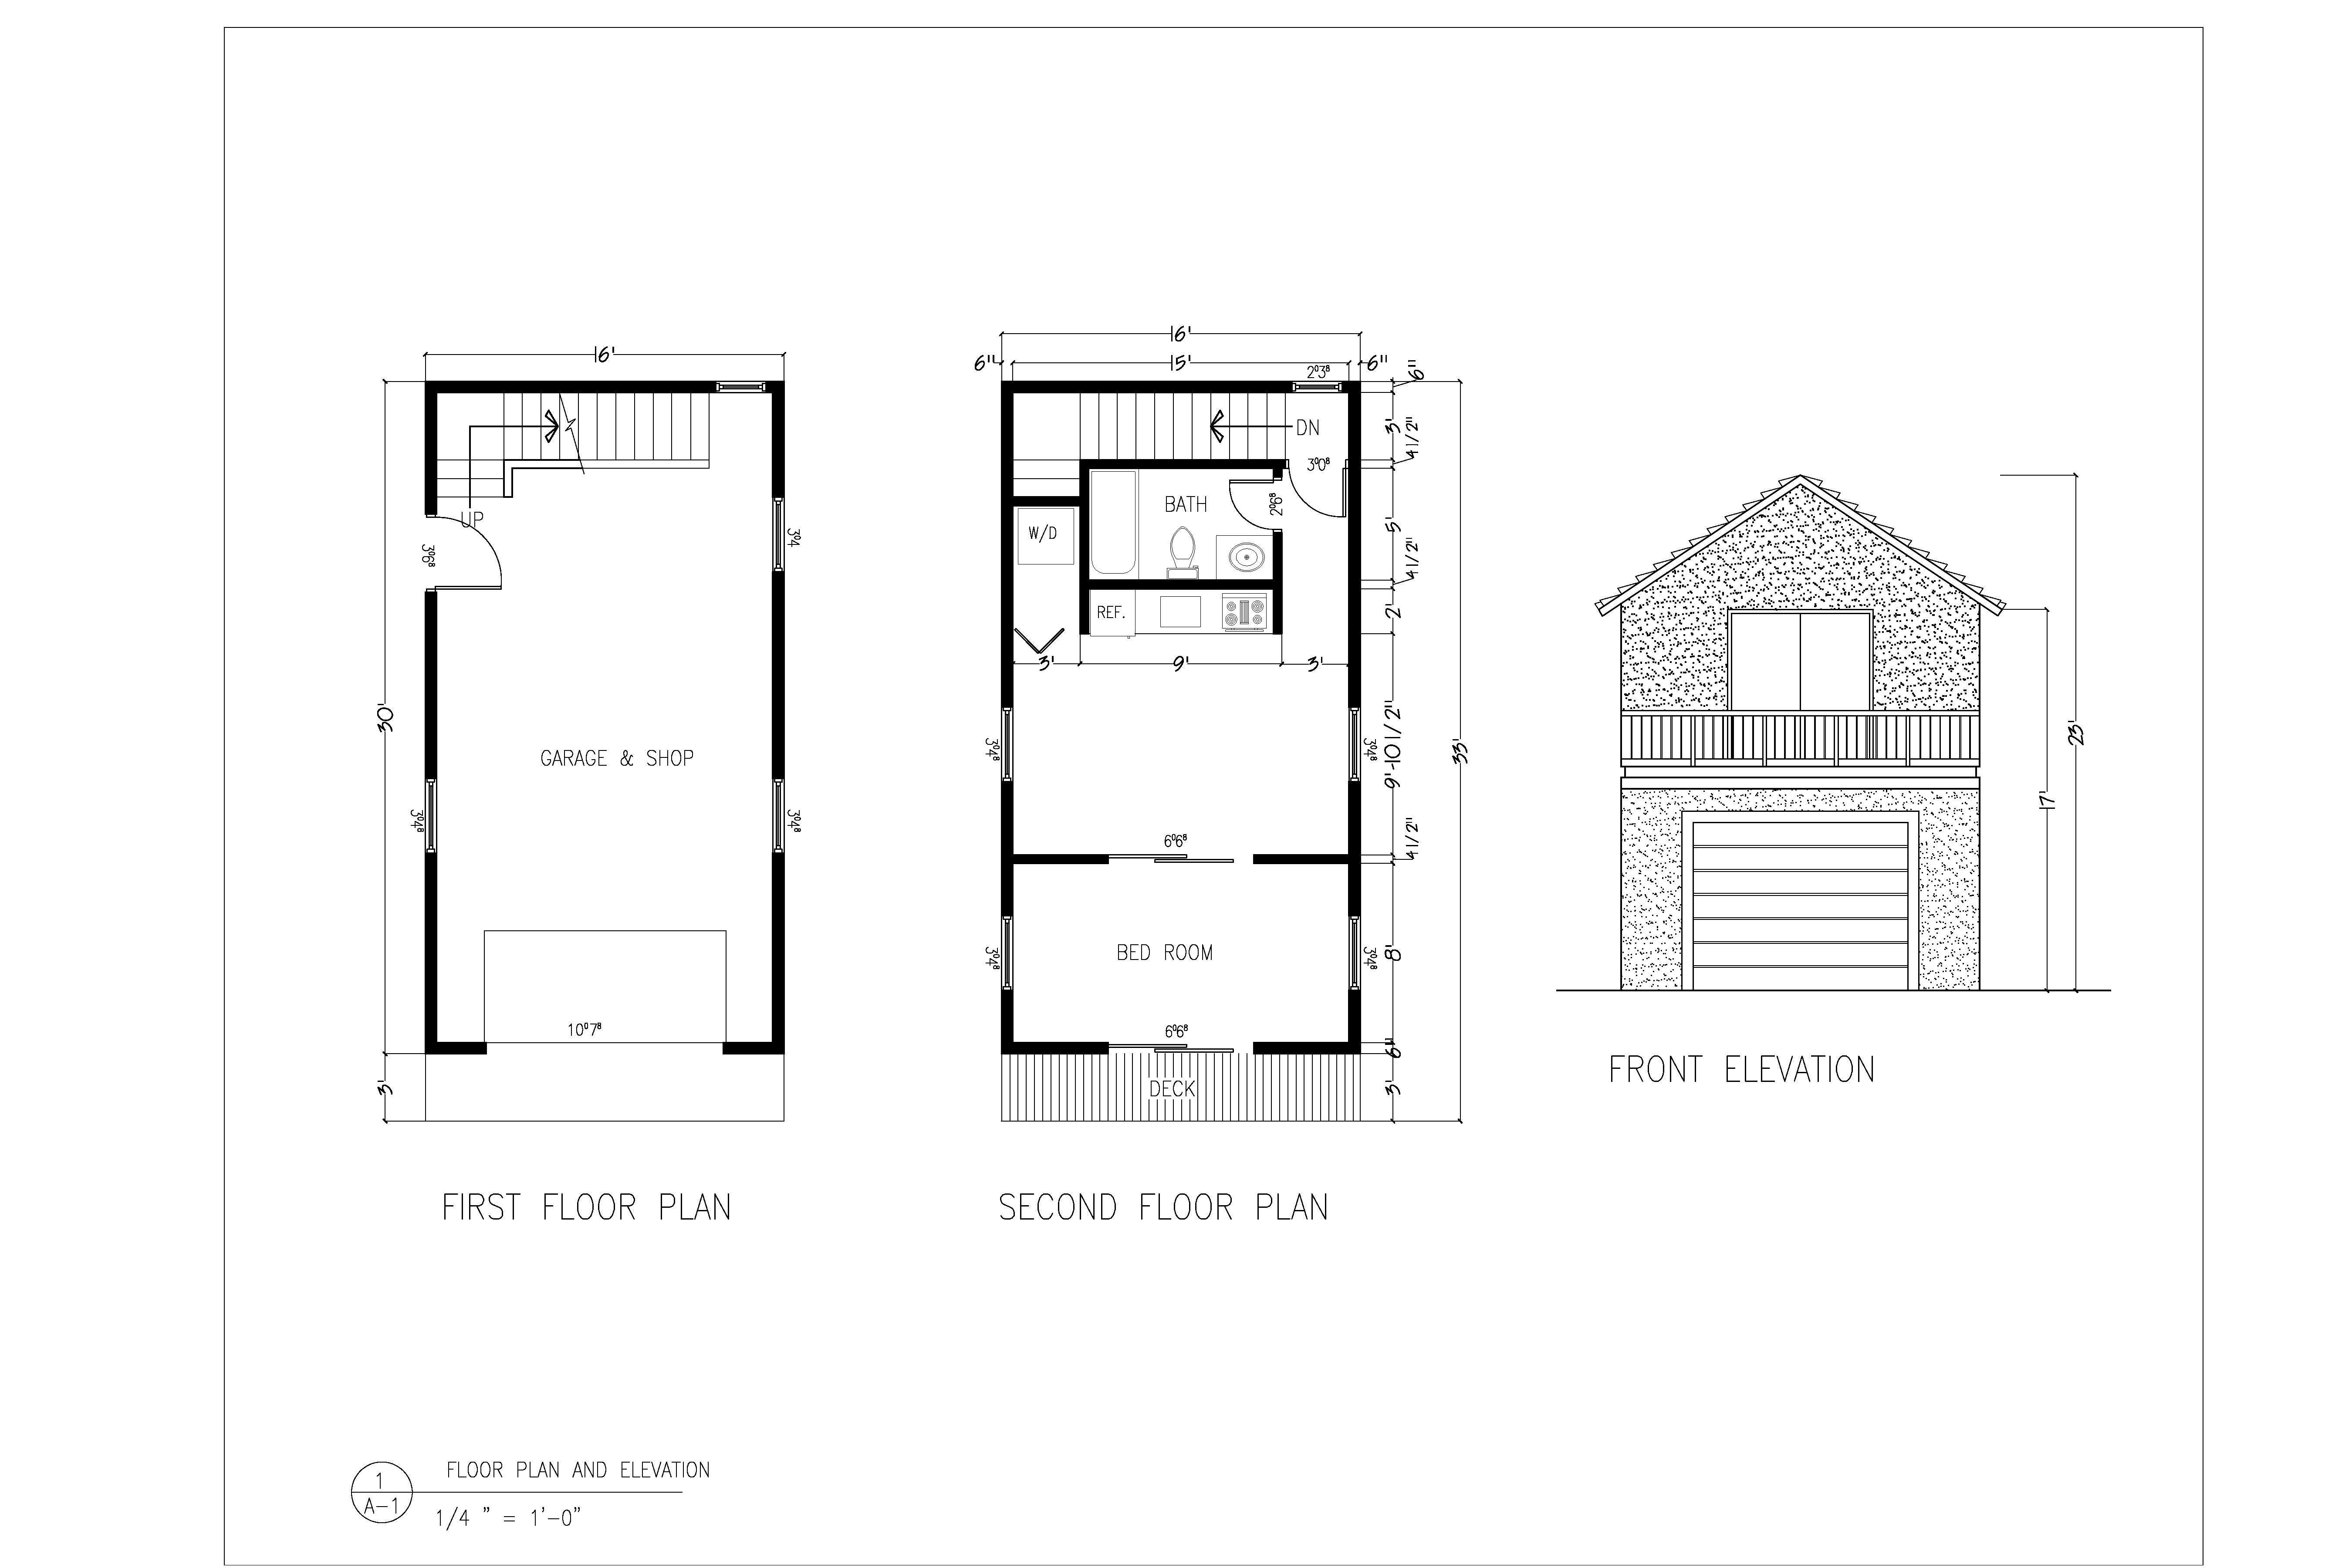 Easybuildingplans ready to use building plans for Building a house layout